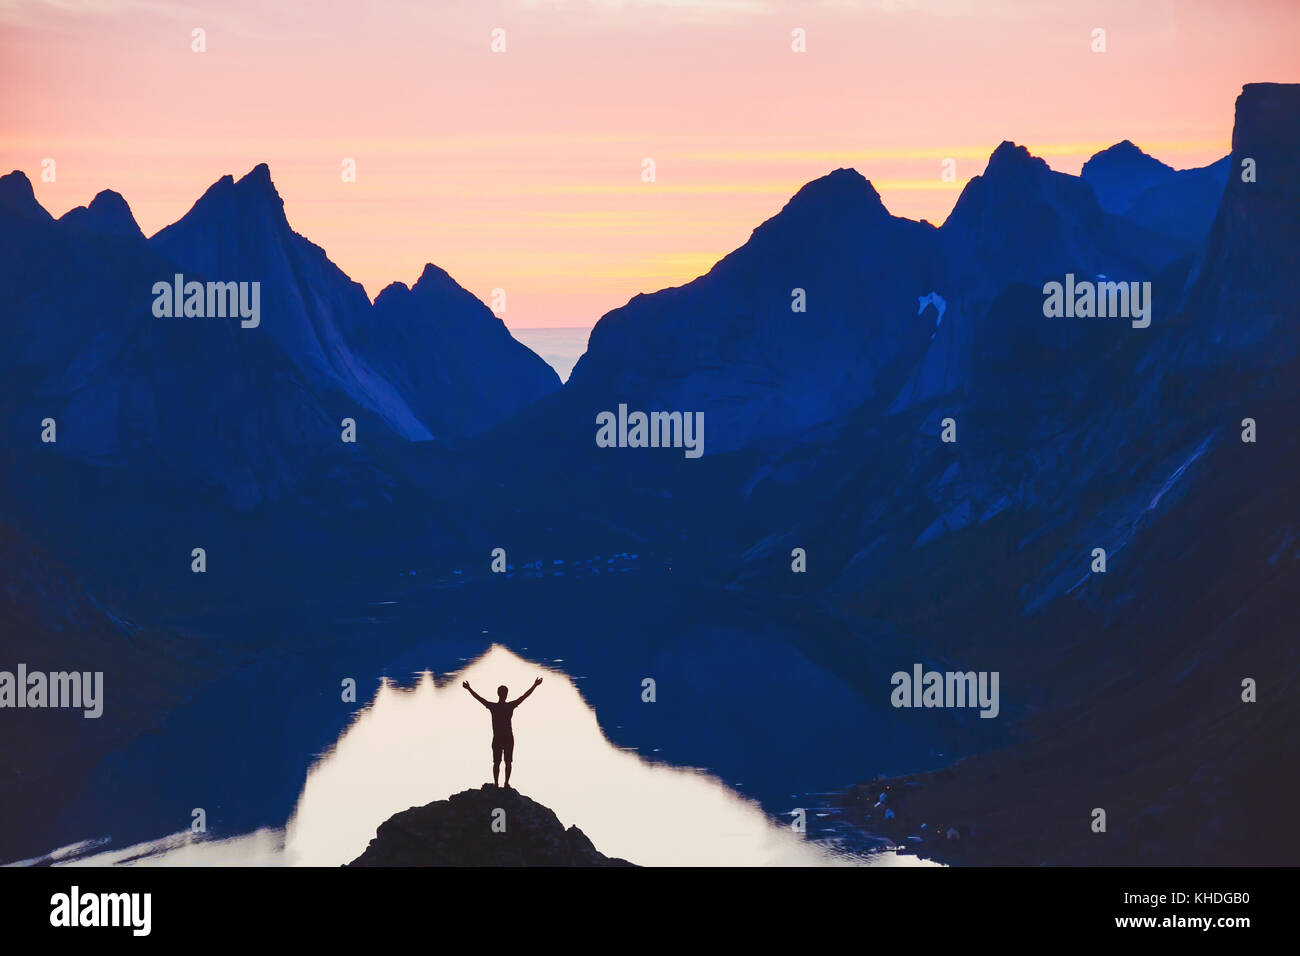 people and nature, silhouette of person with raised hands on beautiful mountain landscape at sunset - Stock Image